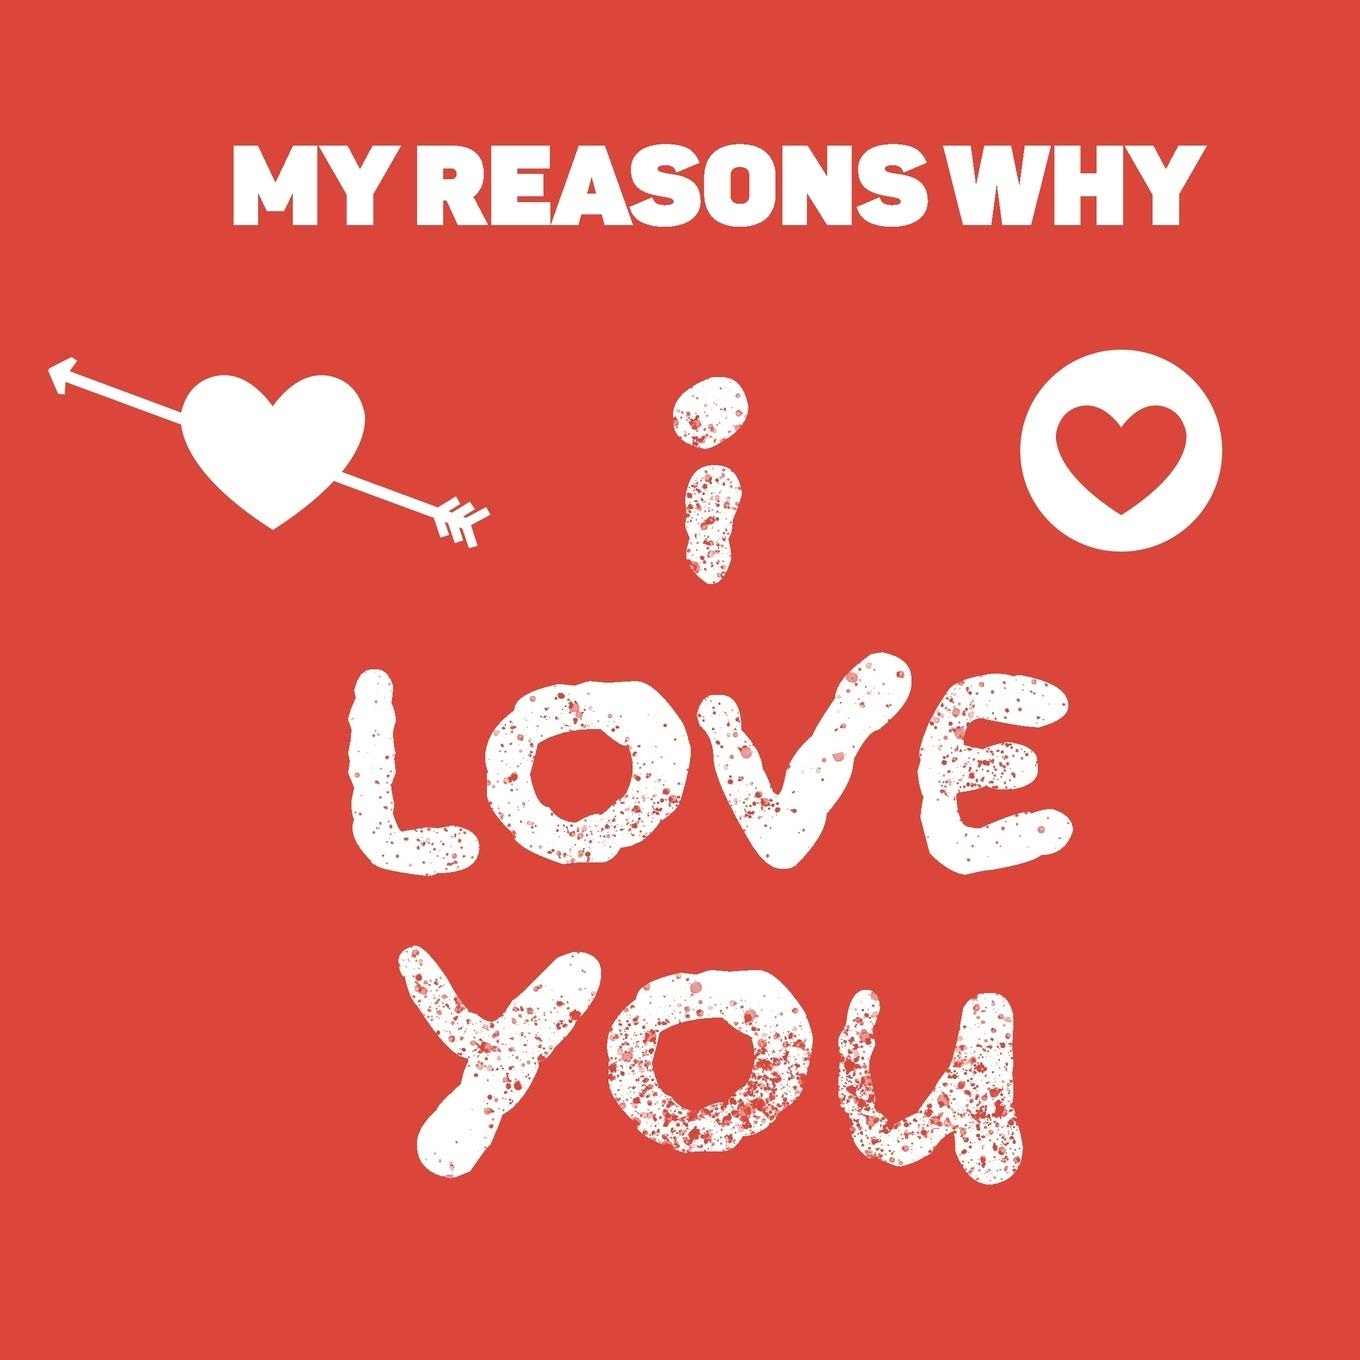 Why love reasons you i All the